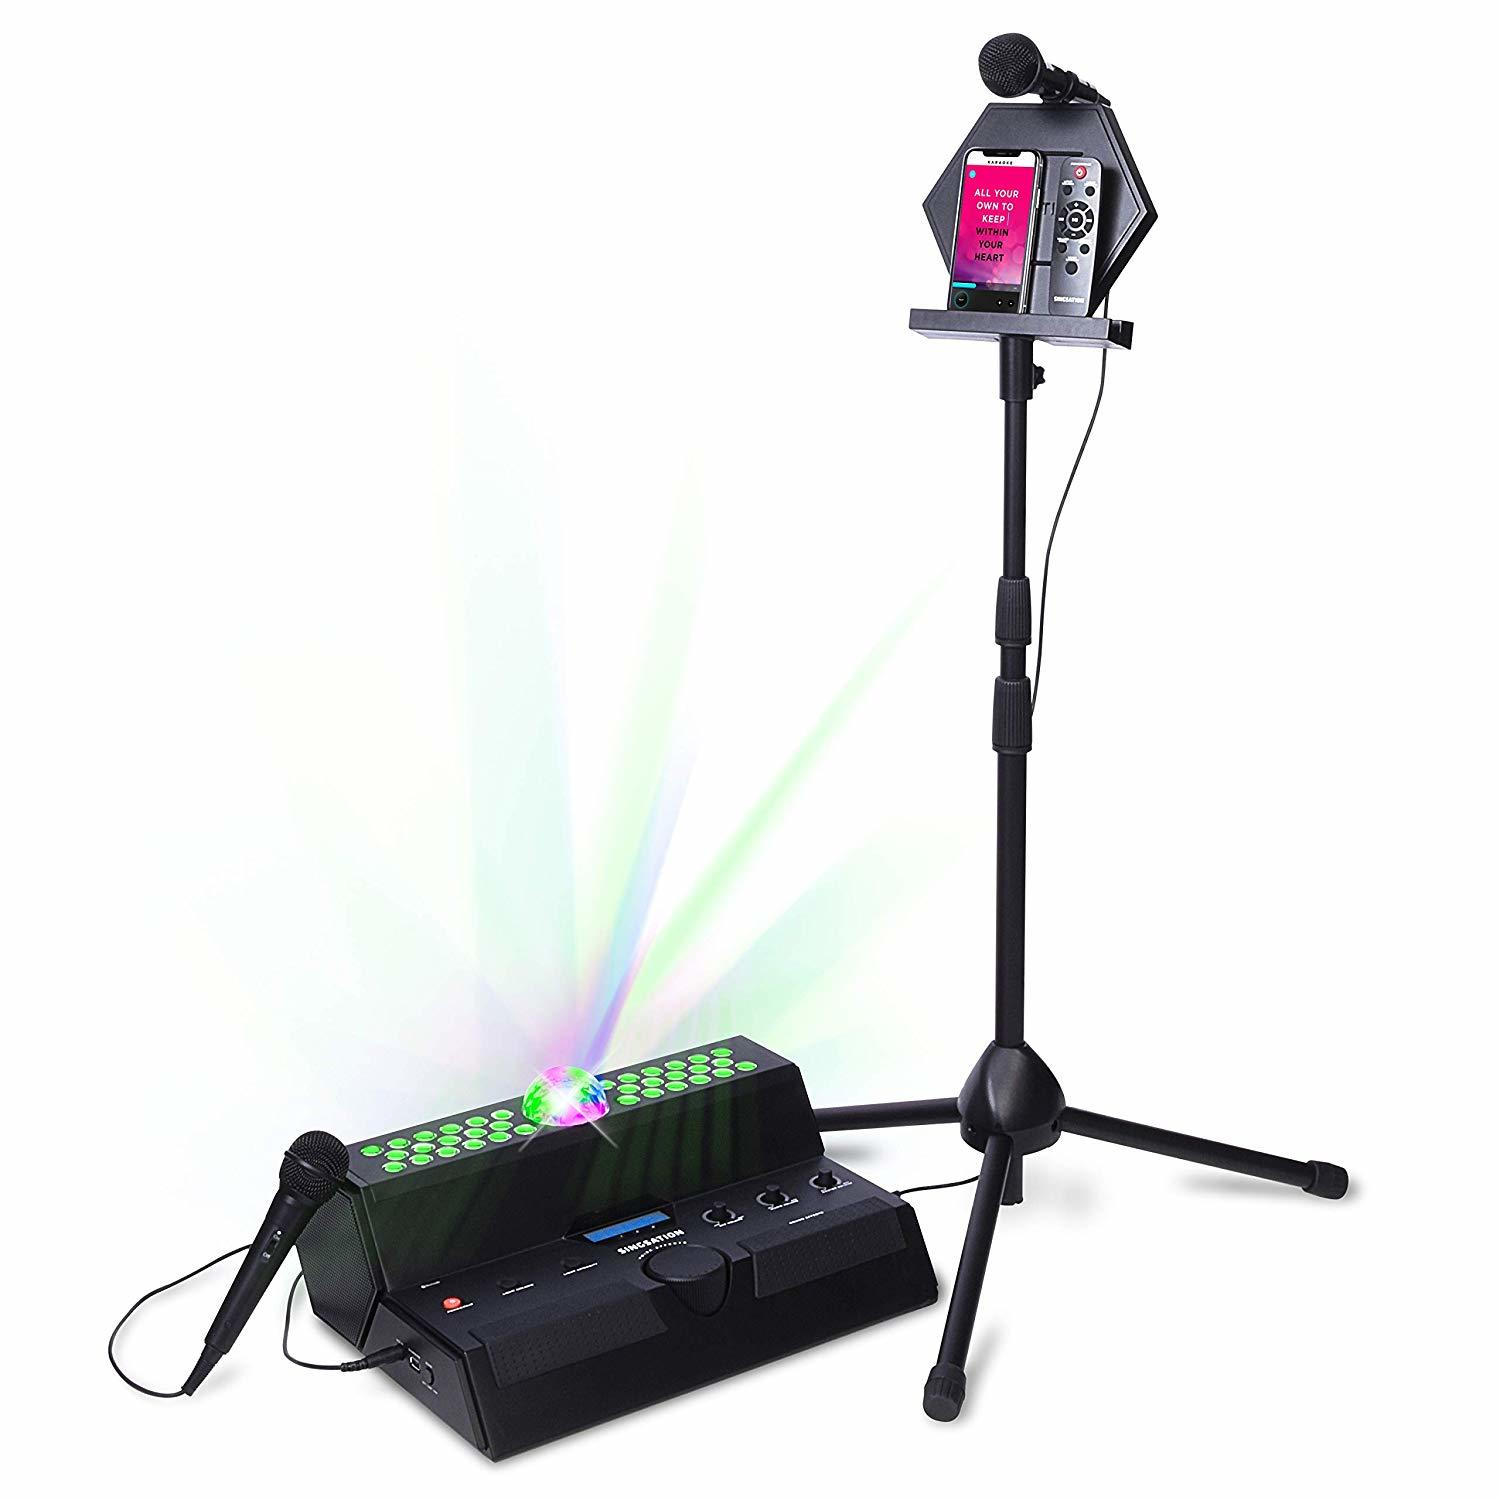 Singsation Karaoke Machine Review